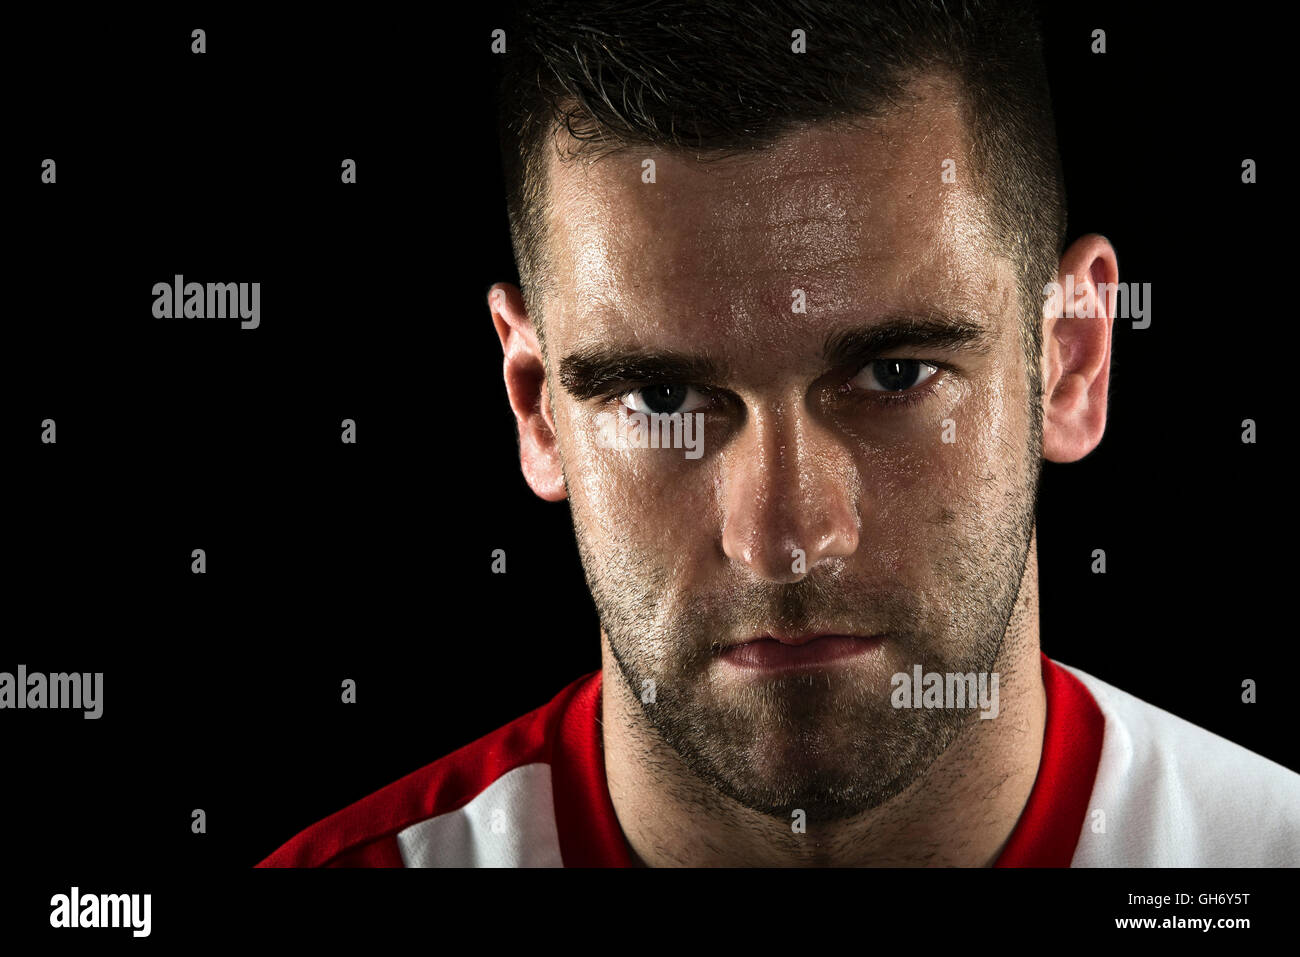 Football soccer player athlete  head shot portrait  wet face sweating - Stock Image